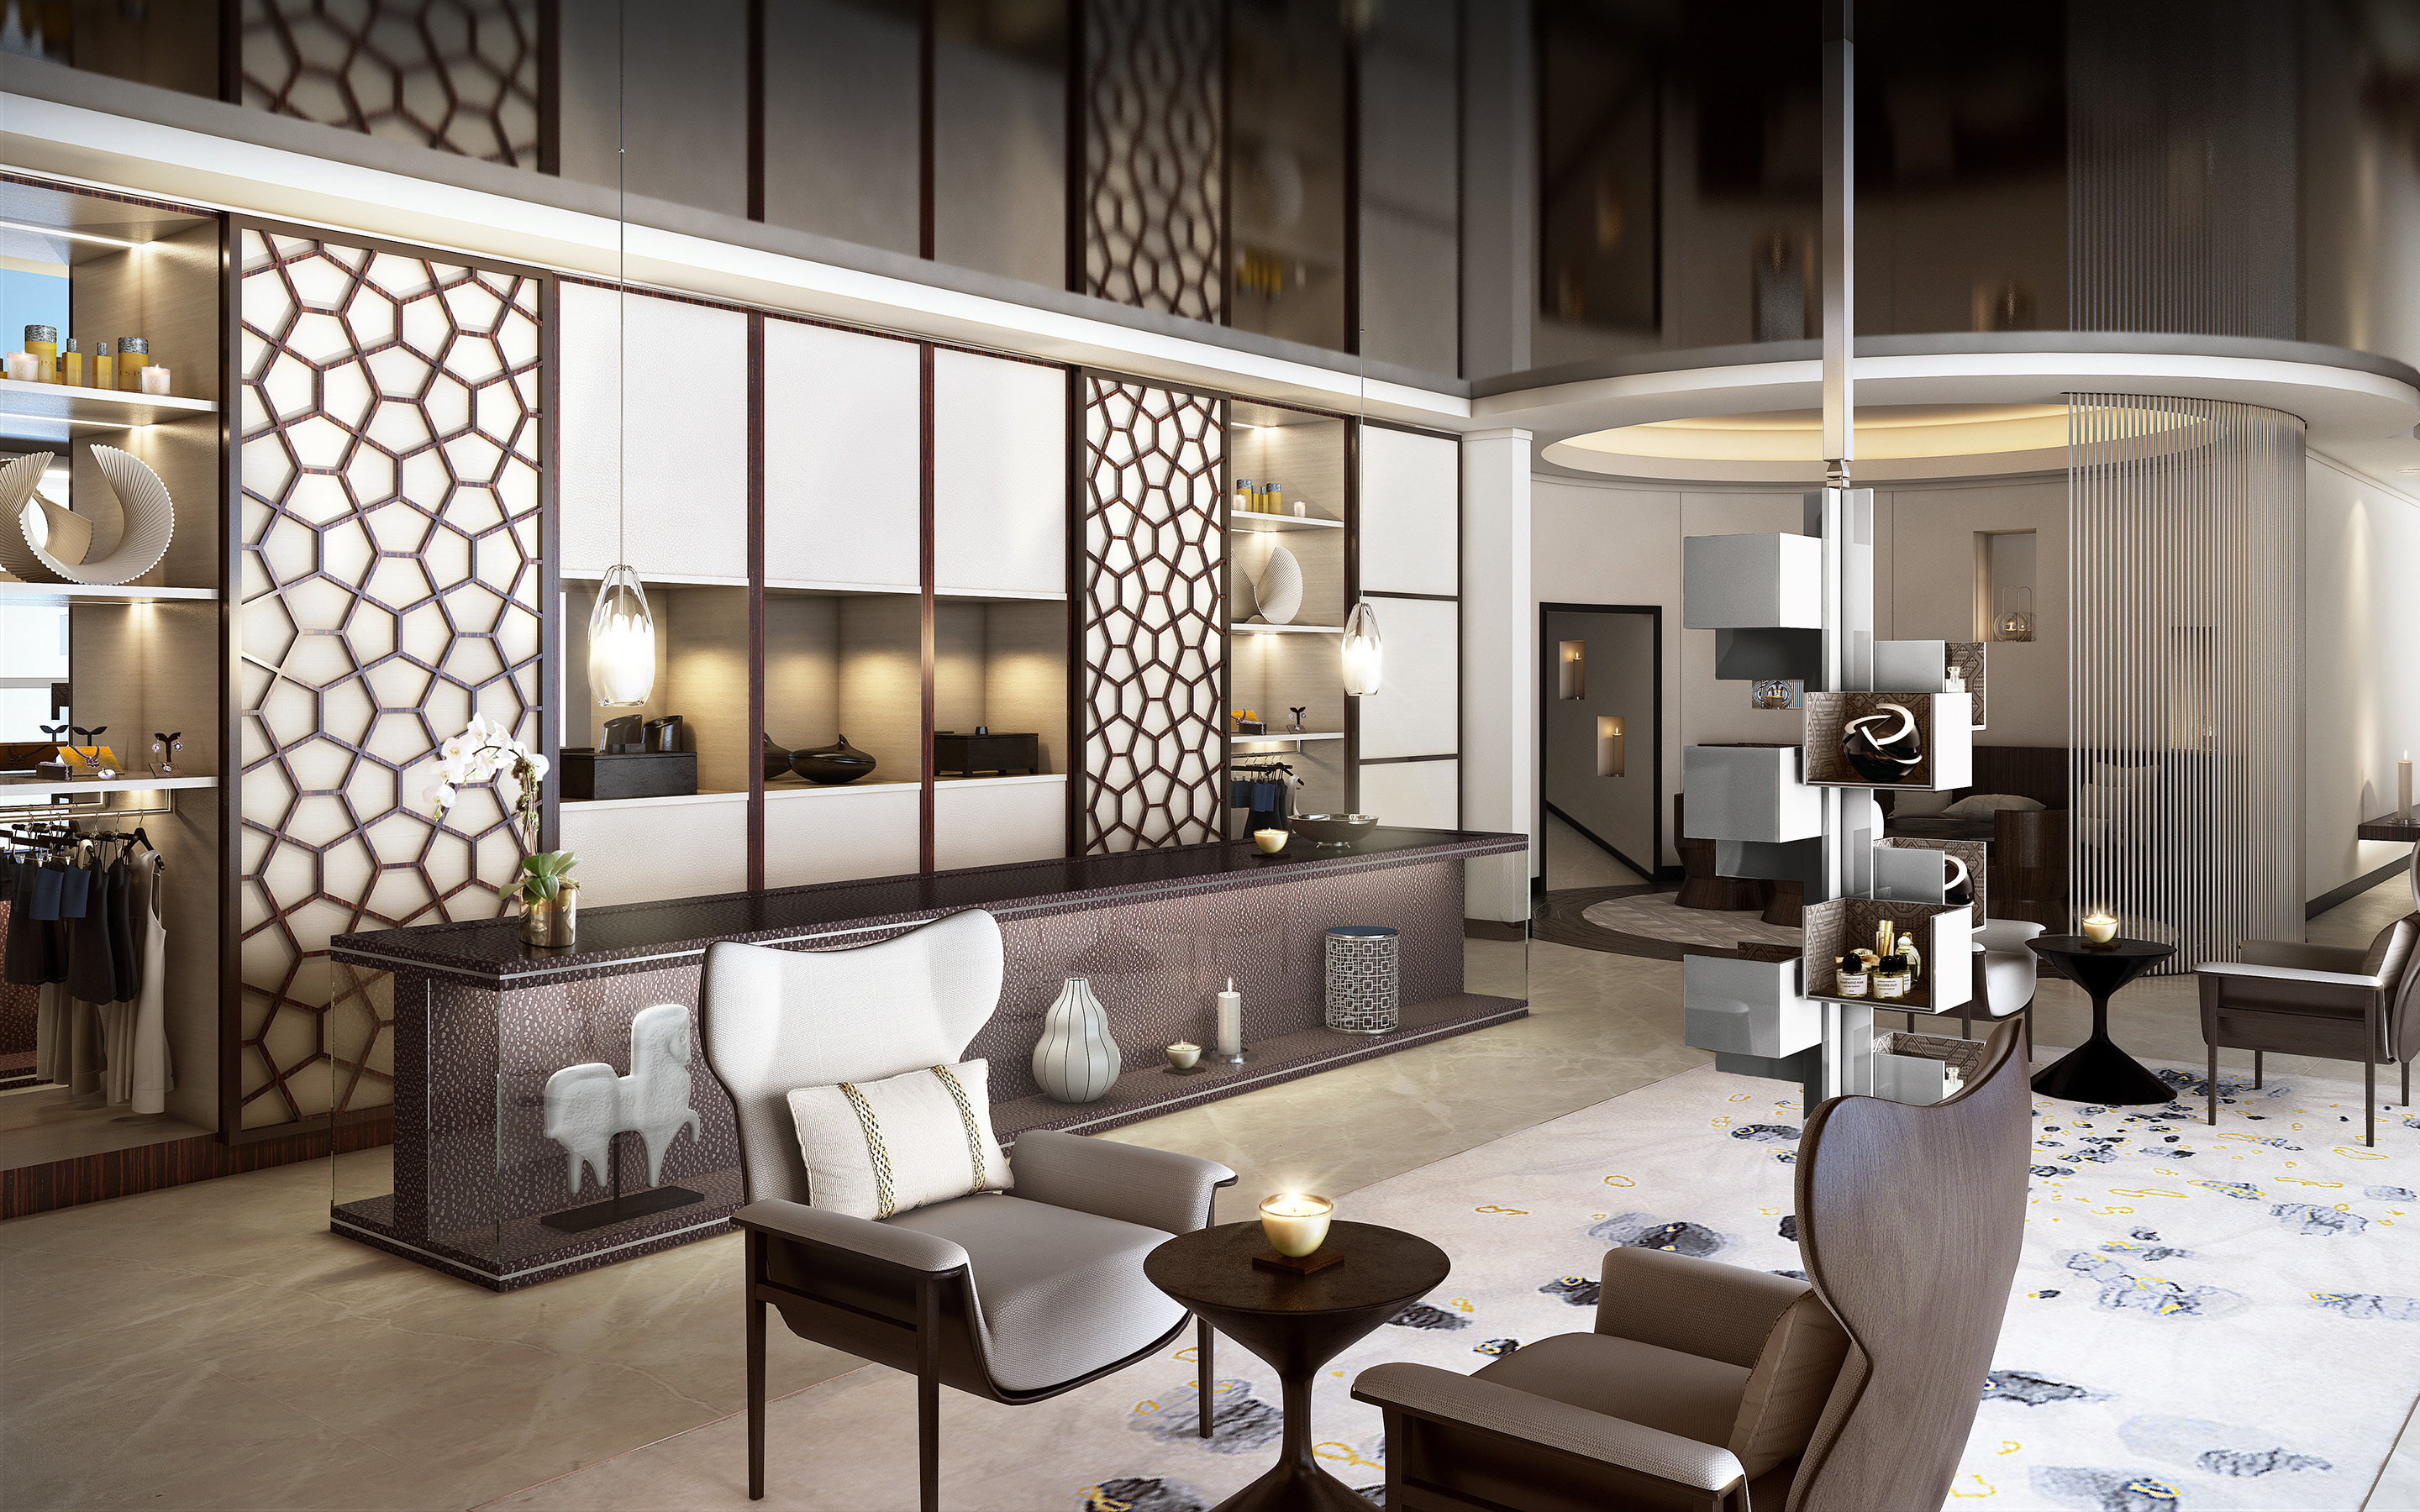 Luxury hotel qatar the gettys group for Interior design room hotel